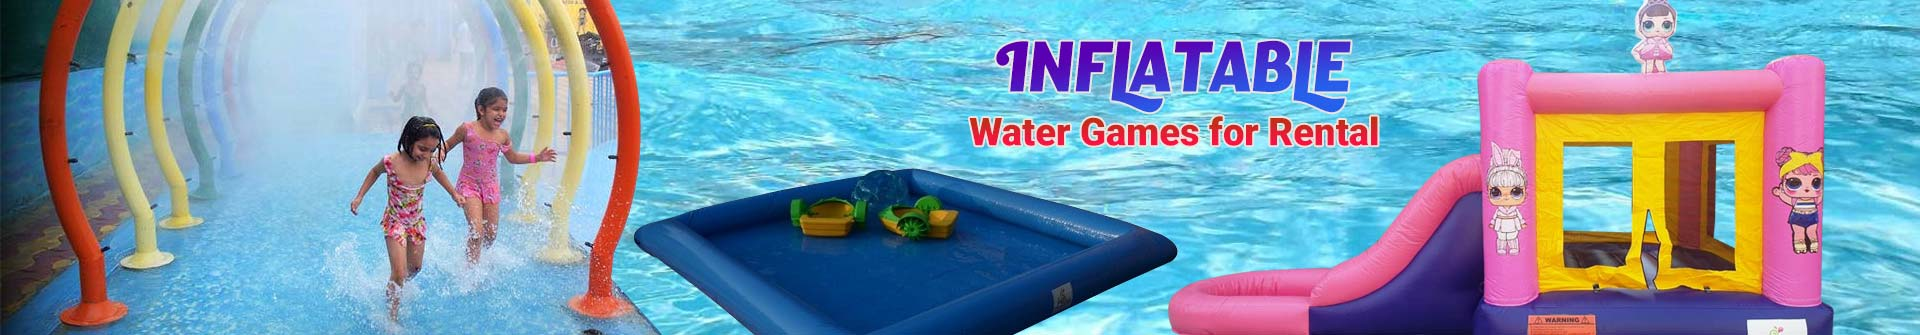 Inflatable Water Game for Rental